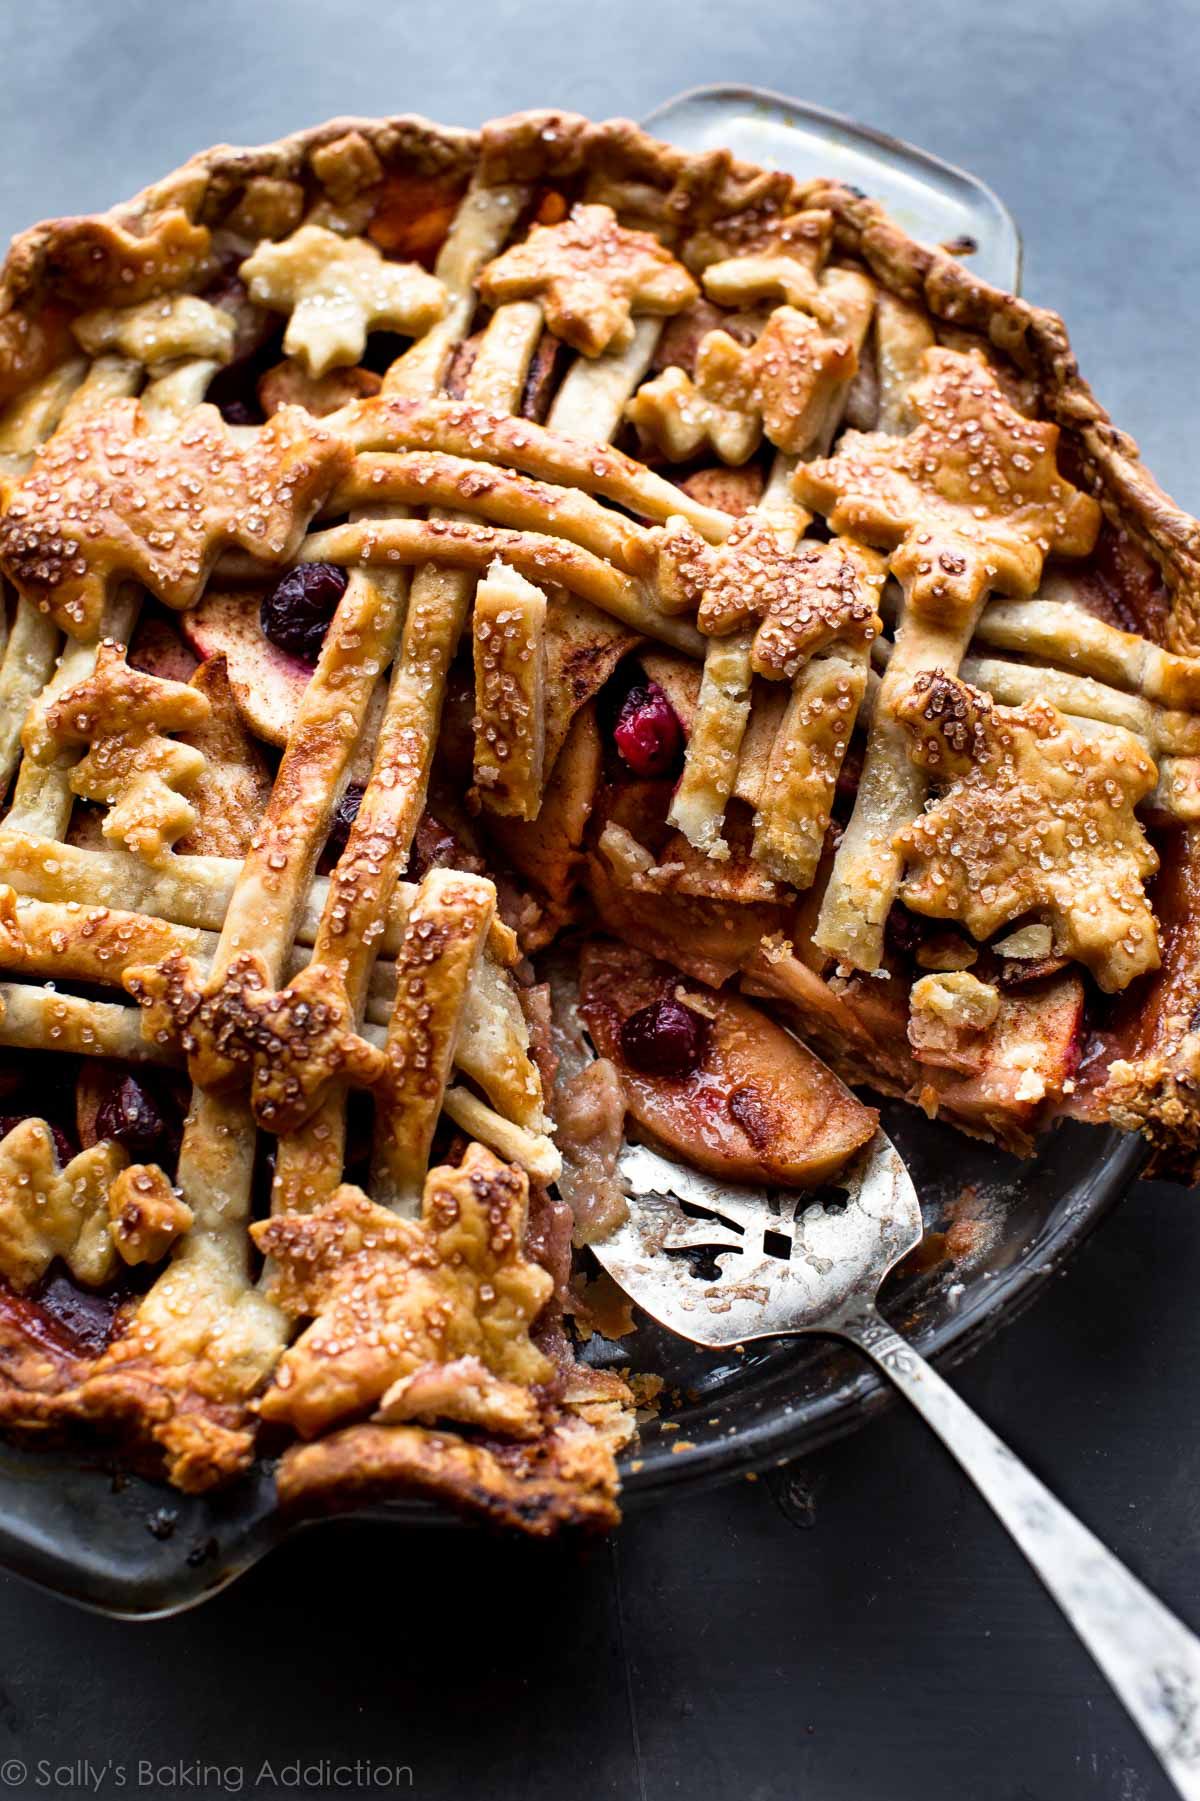 This cranberry almond apple pie is the Thanksgiving dessert that everyone will be talking about! The flavor is divine and it couldn't be easier to make. Recipe on sallysbakingaddiction.com